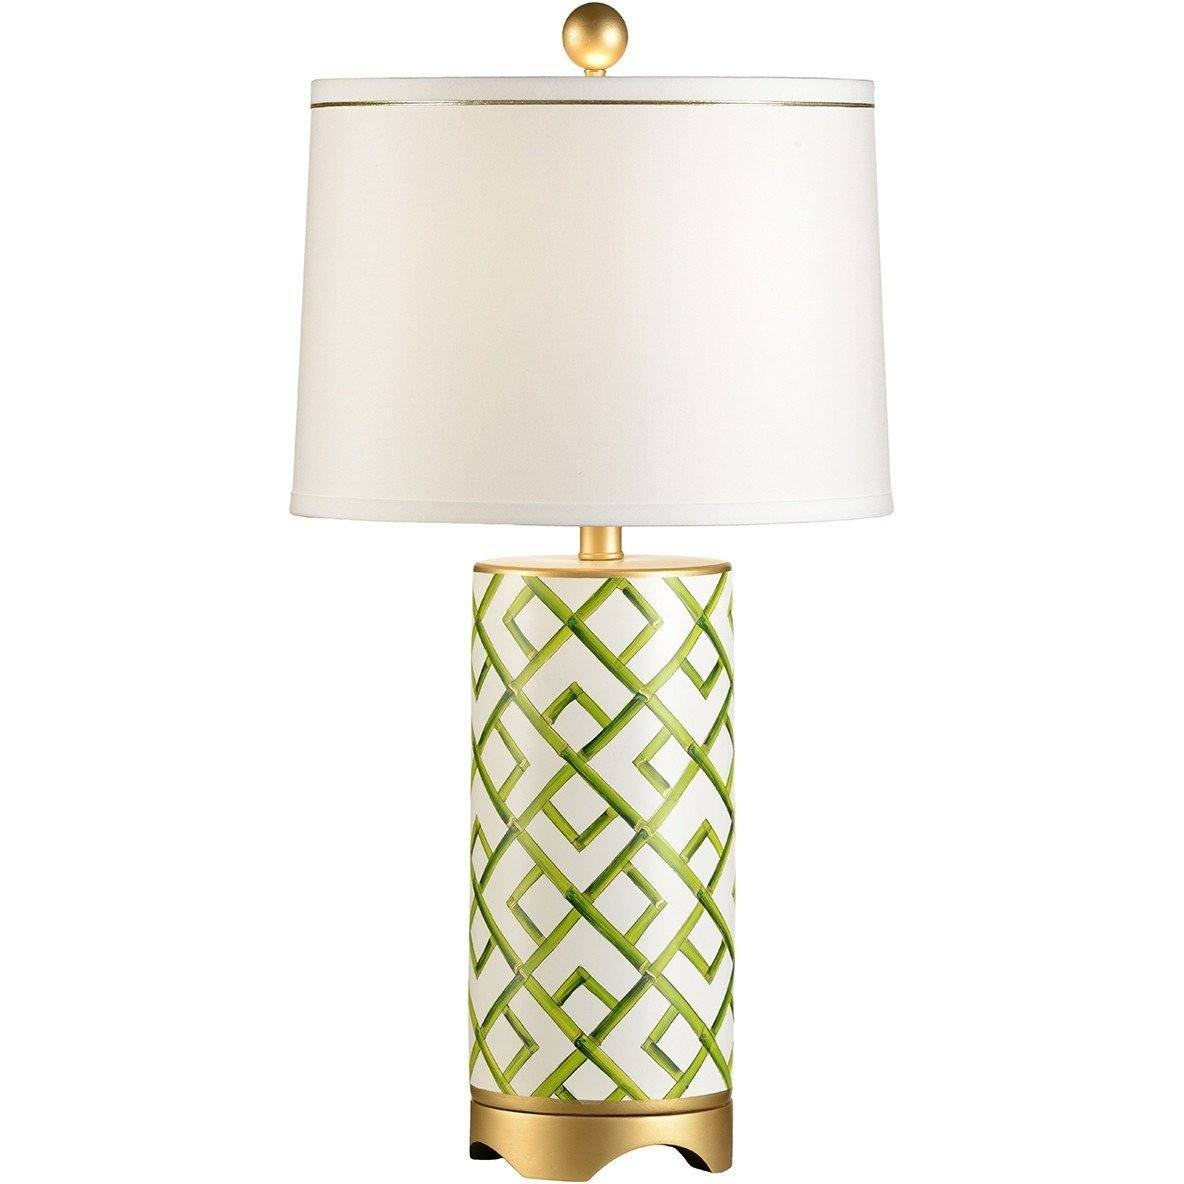 Chelsea House Bamboo Squares Gold Table Lamp - LOVECUP